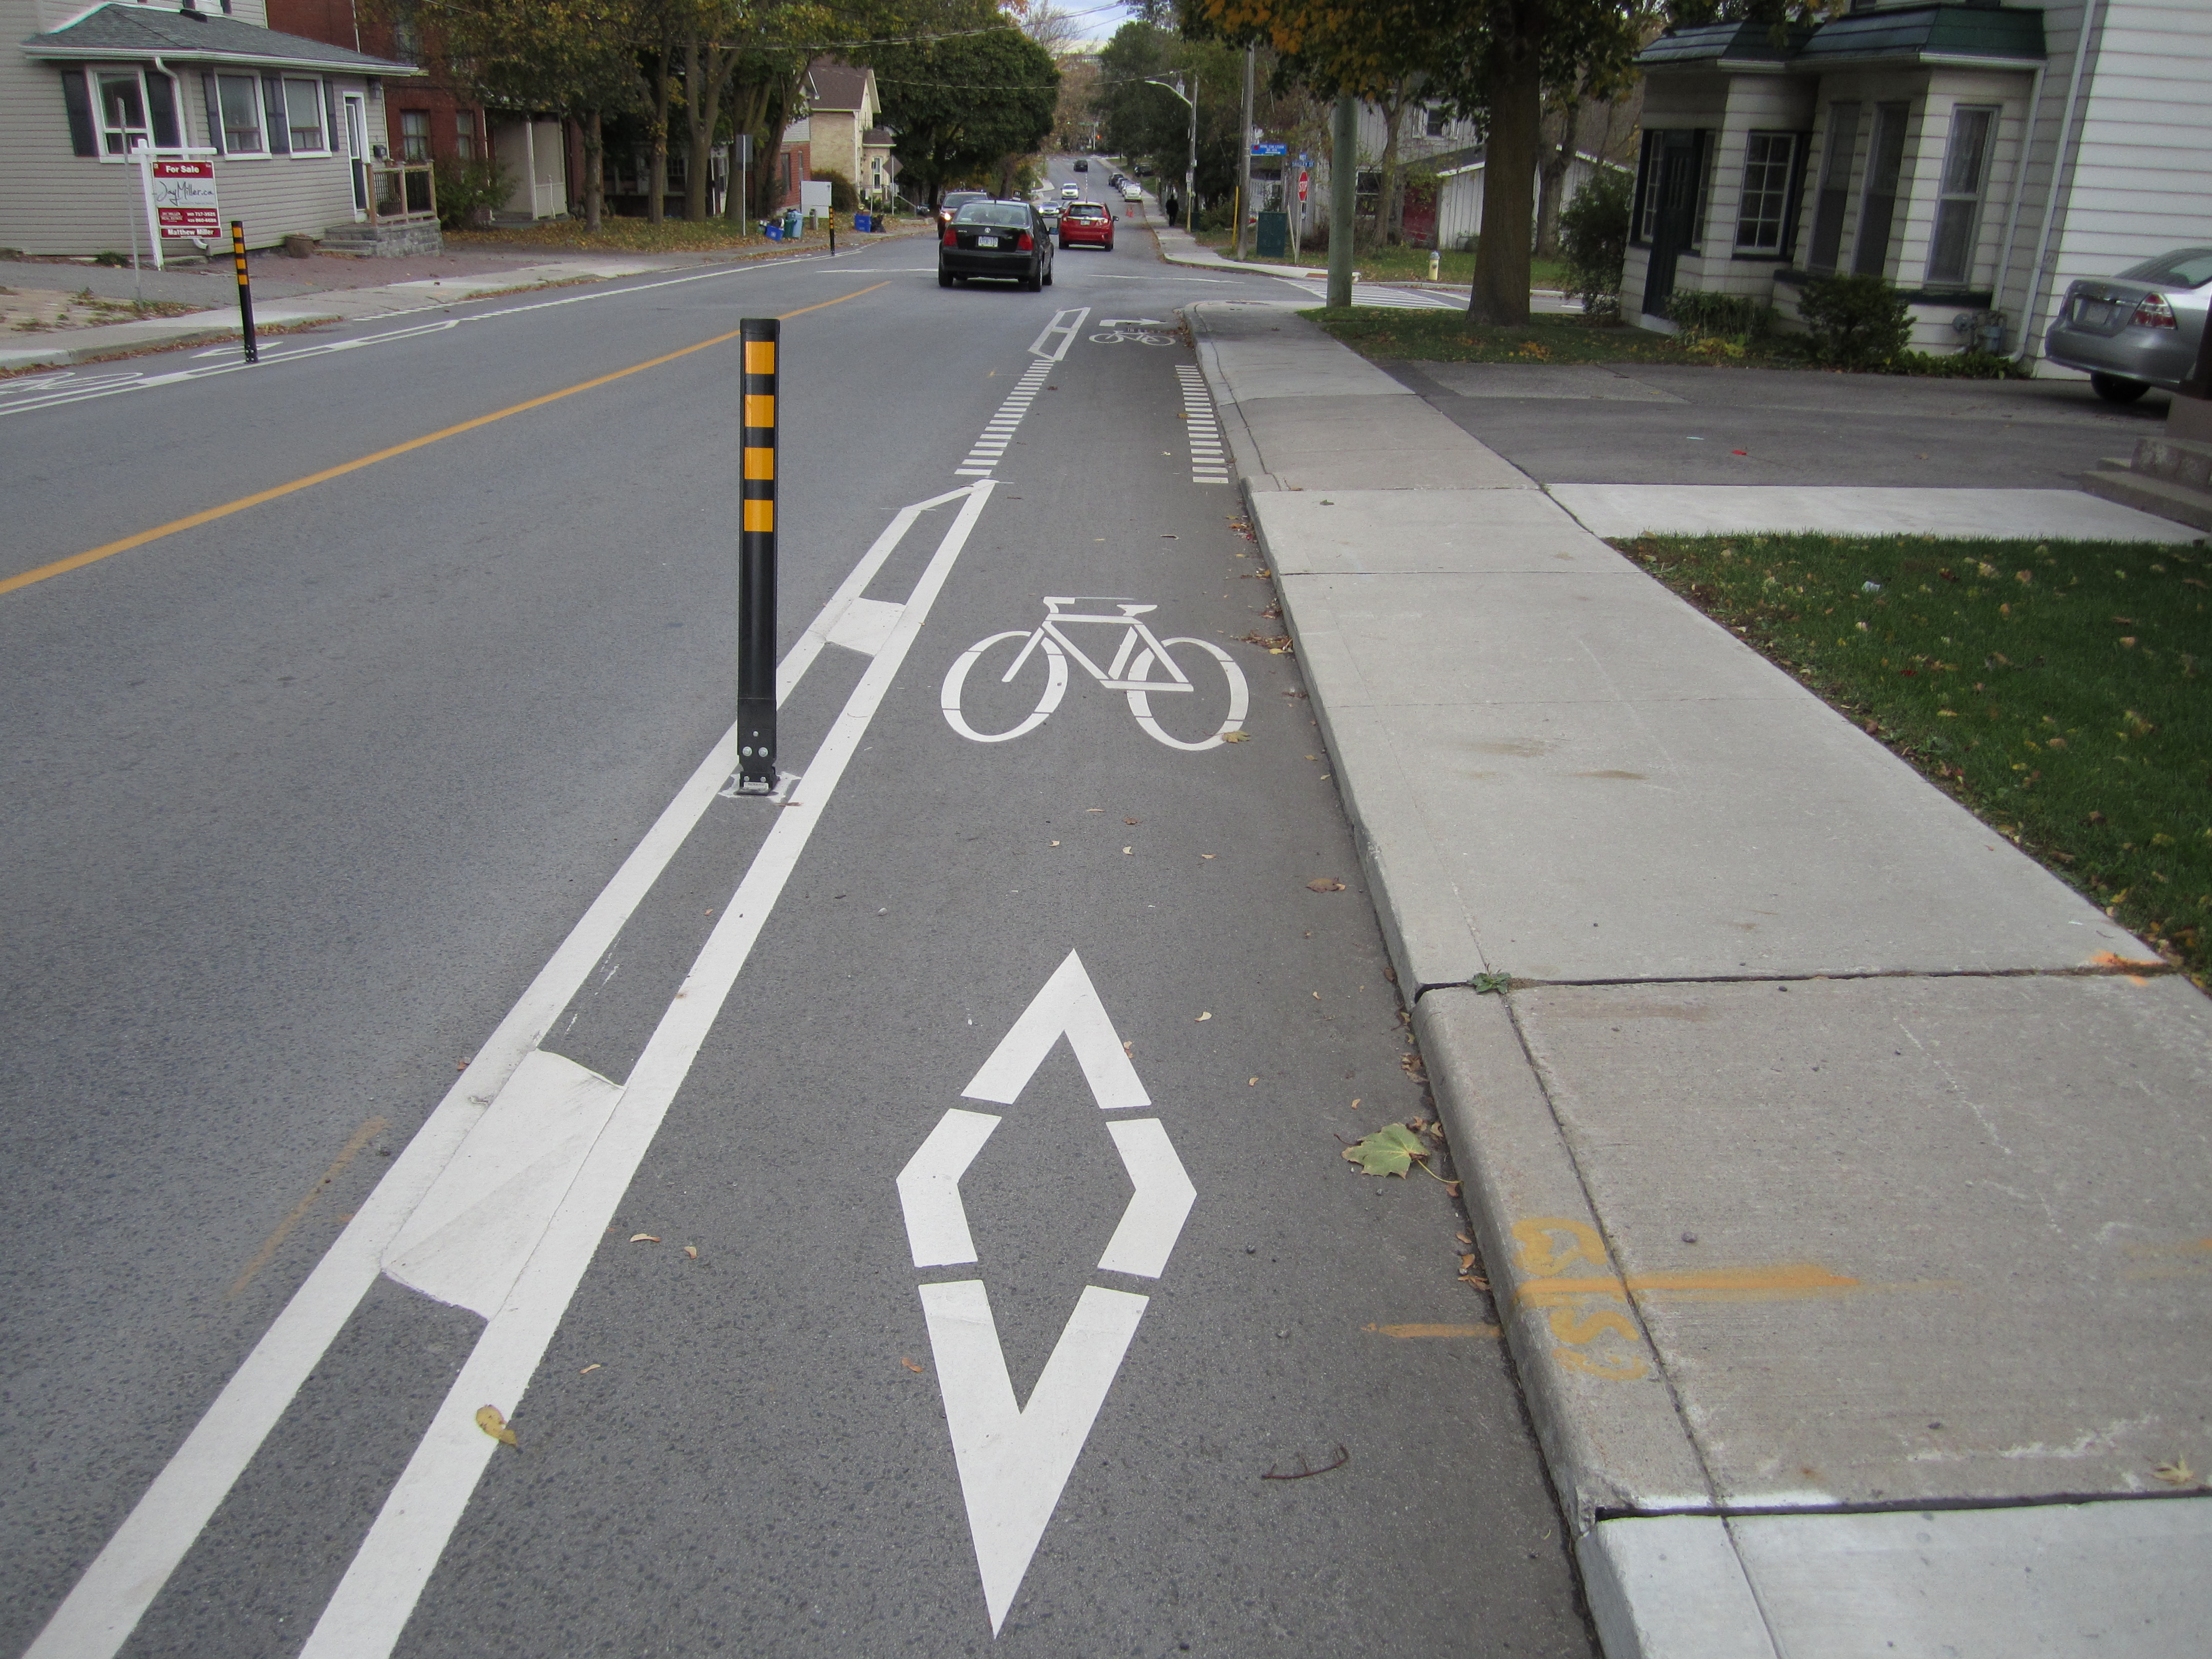 a picture showing a bicycle and diamond symbol on Prospect Street